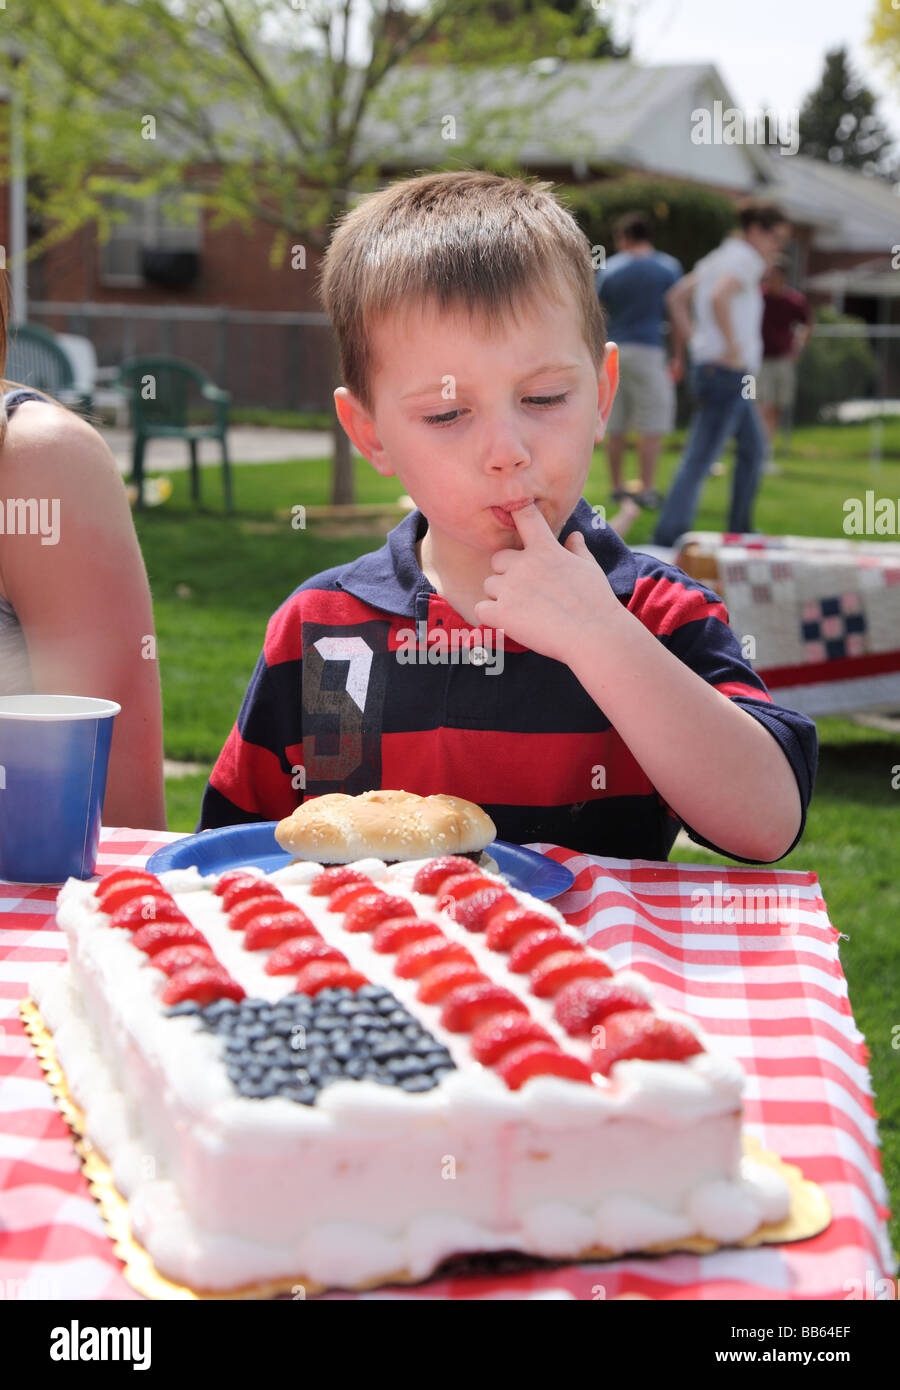 Young boy eating frosting off patriotic cake - Stock Image